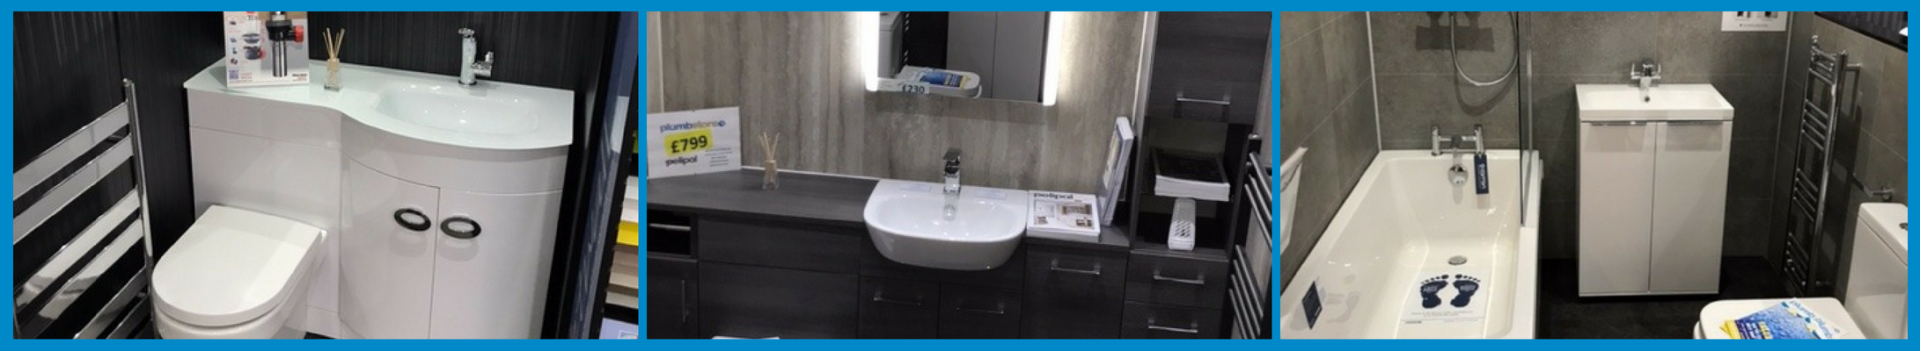 Plumbstore Bellshill bathroom display areas in there bellshill bathroom showroom